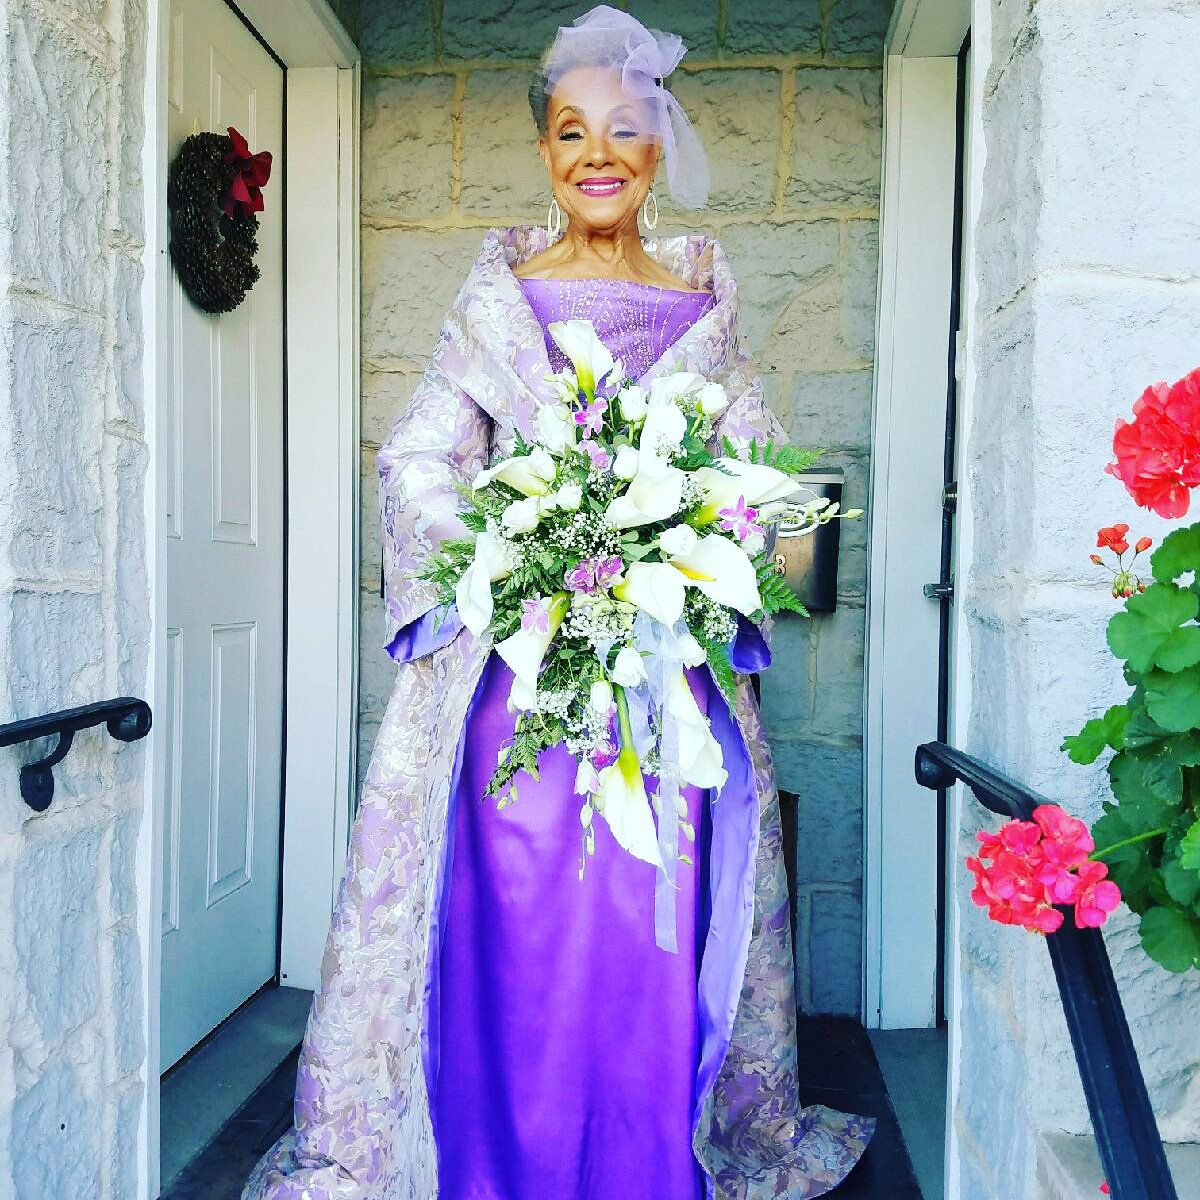 """Millie Taylor-Morrison, who was a model in the 1950s, designed the wedding dress herself. <a href=""""https://www.facebook.com/d"""